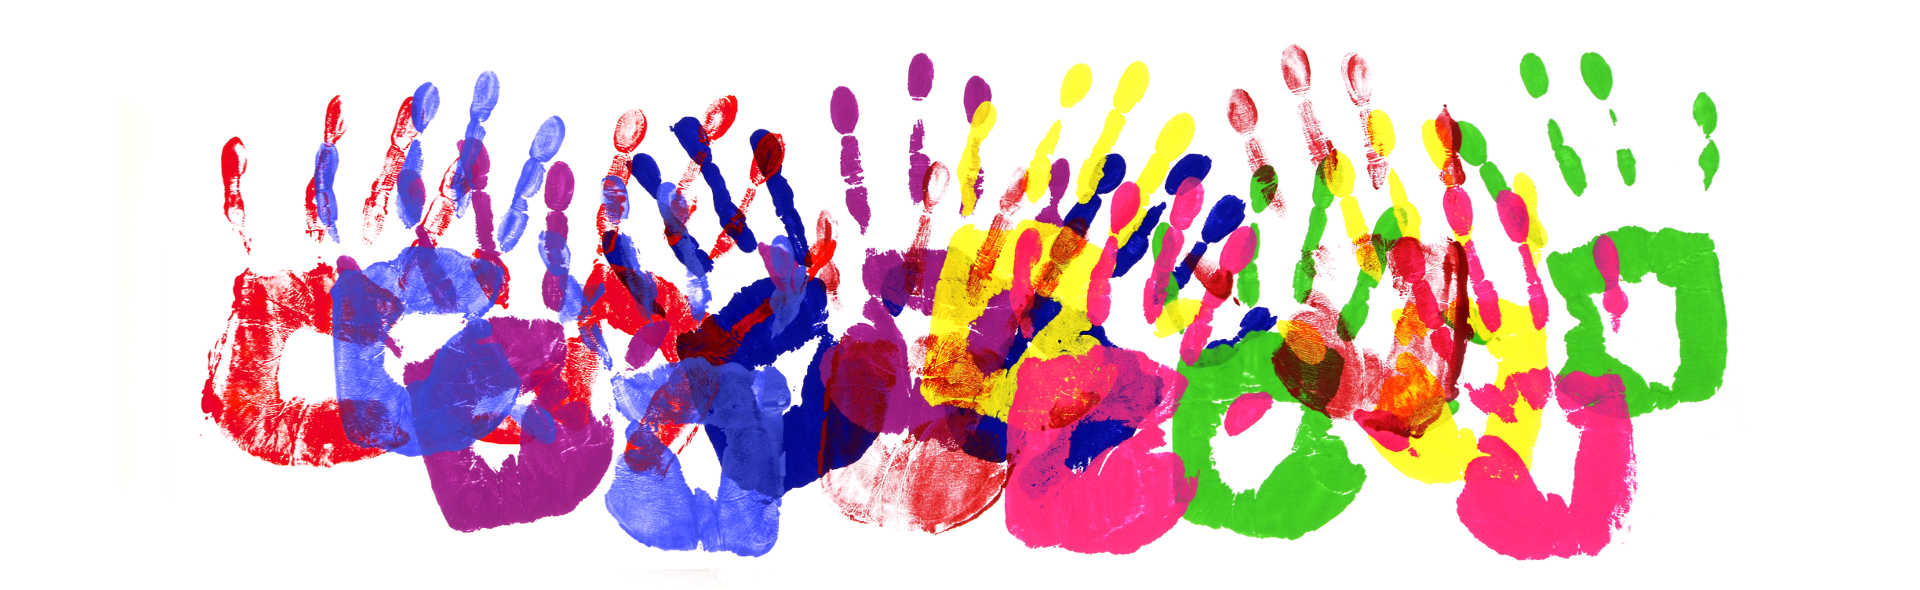 Female or child handprints made from vivid acrylic paint on white paper